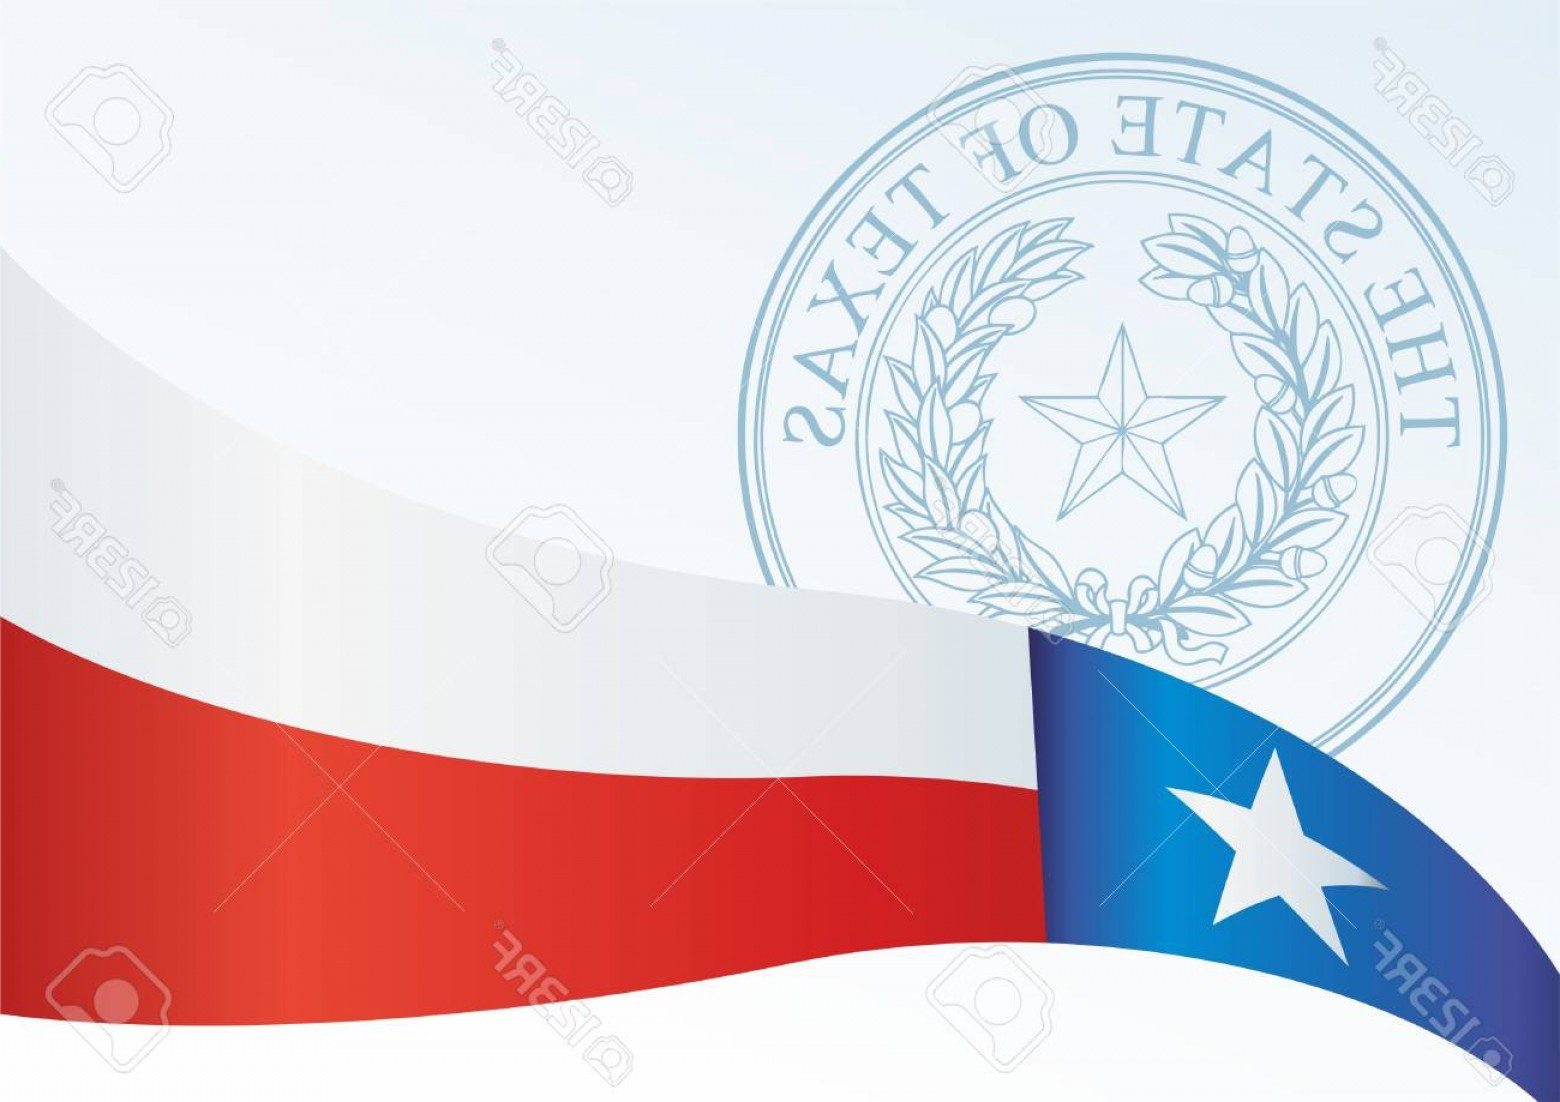 Texas Flag Vector Art: Photostock Vector Texas Flag Template For The Award An Official Document With The Flag Of The State Of Texas